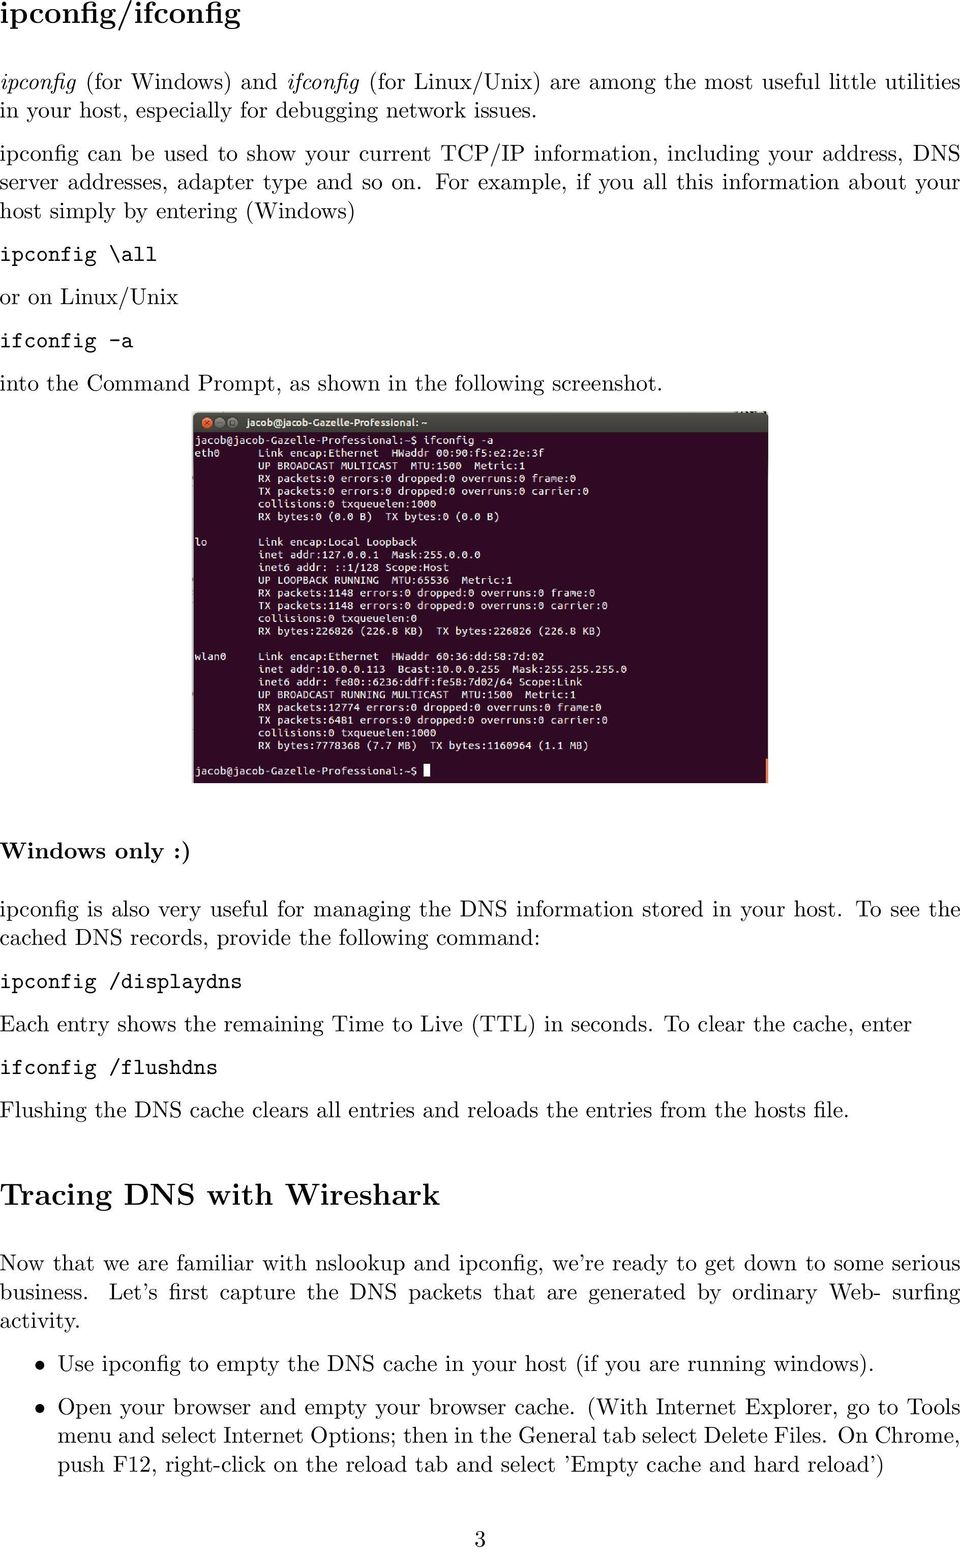 Wireshark DNS  Introduction  nslookup - PDF